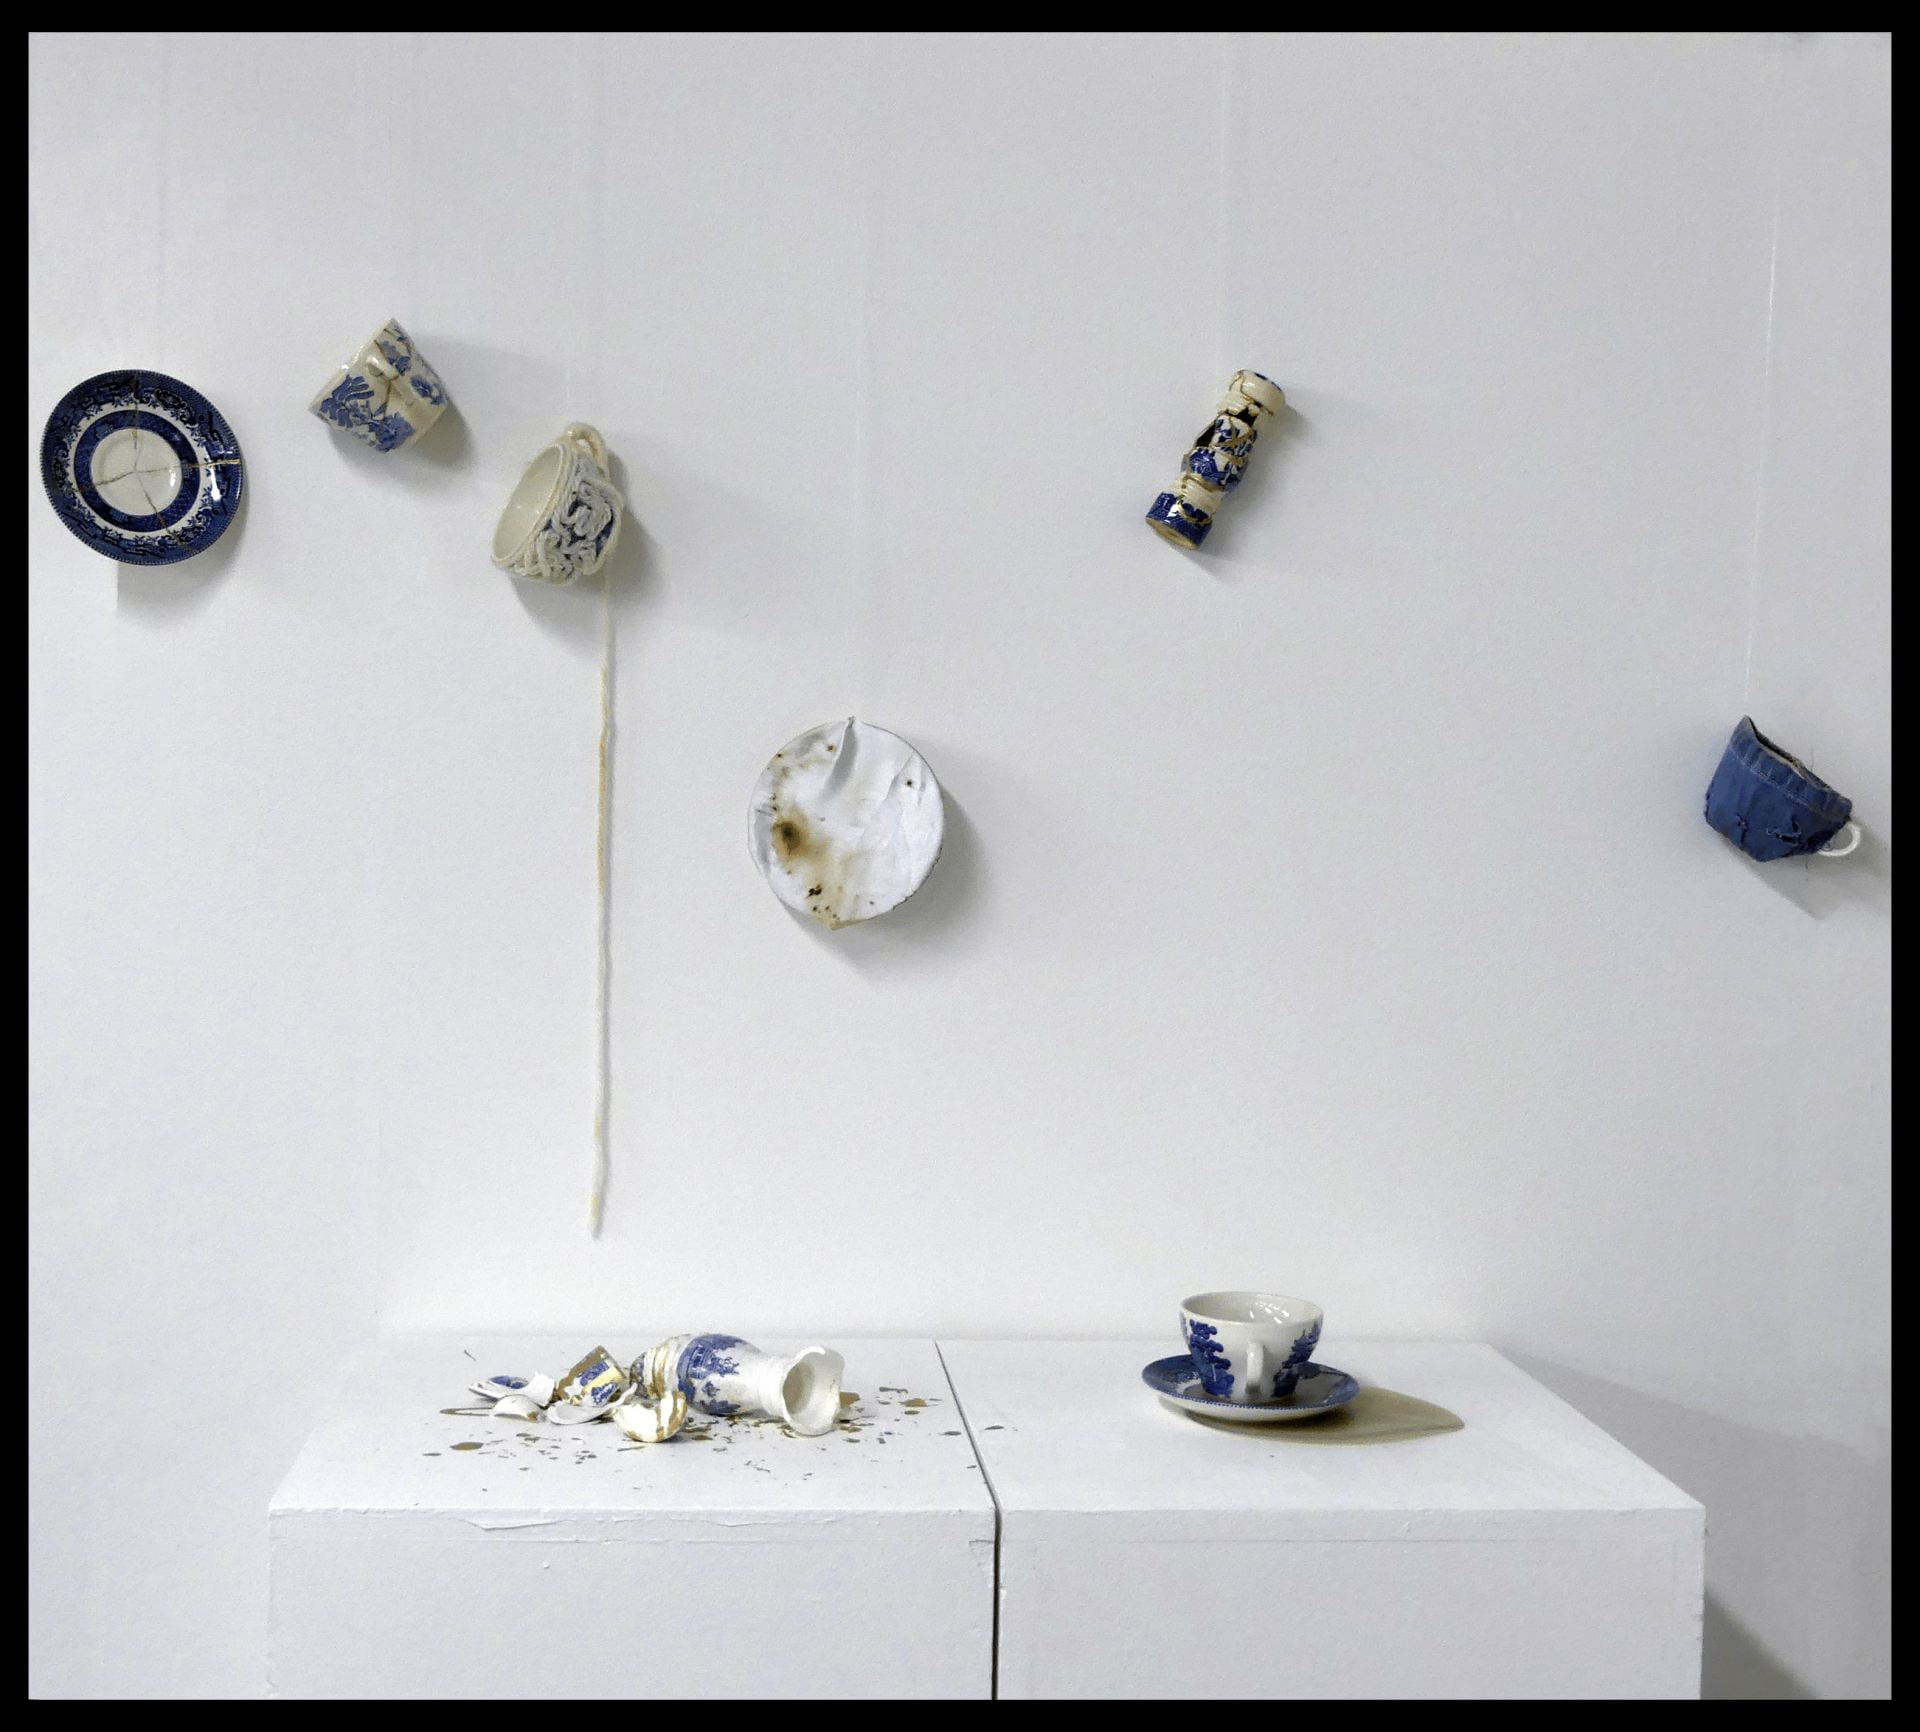 Artistic piece named 'Peace of Mind' a solo installation piece which explored control and the anxieties I experience when having no control over my environment, featuring blue and white crockery either smashed or in mid air.